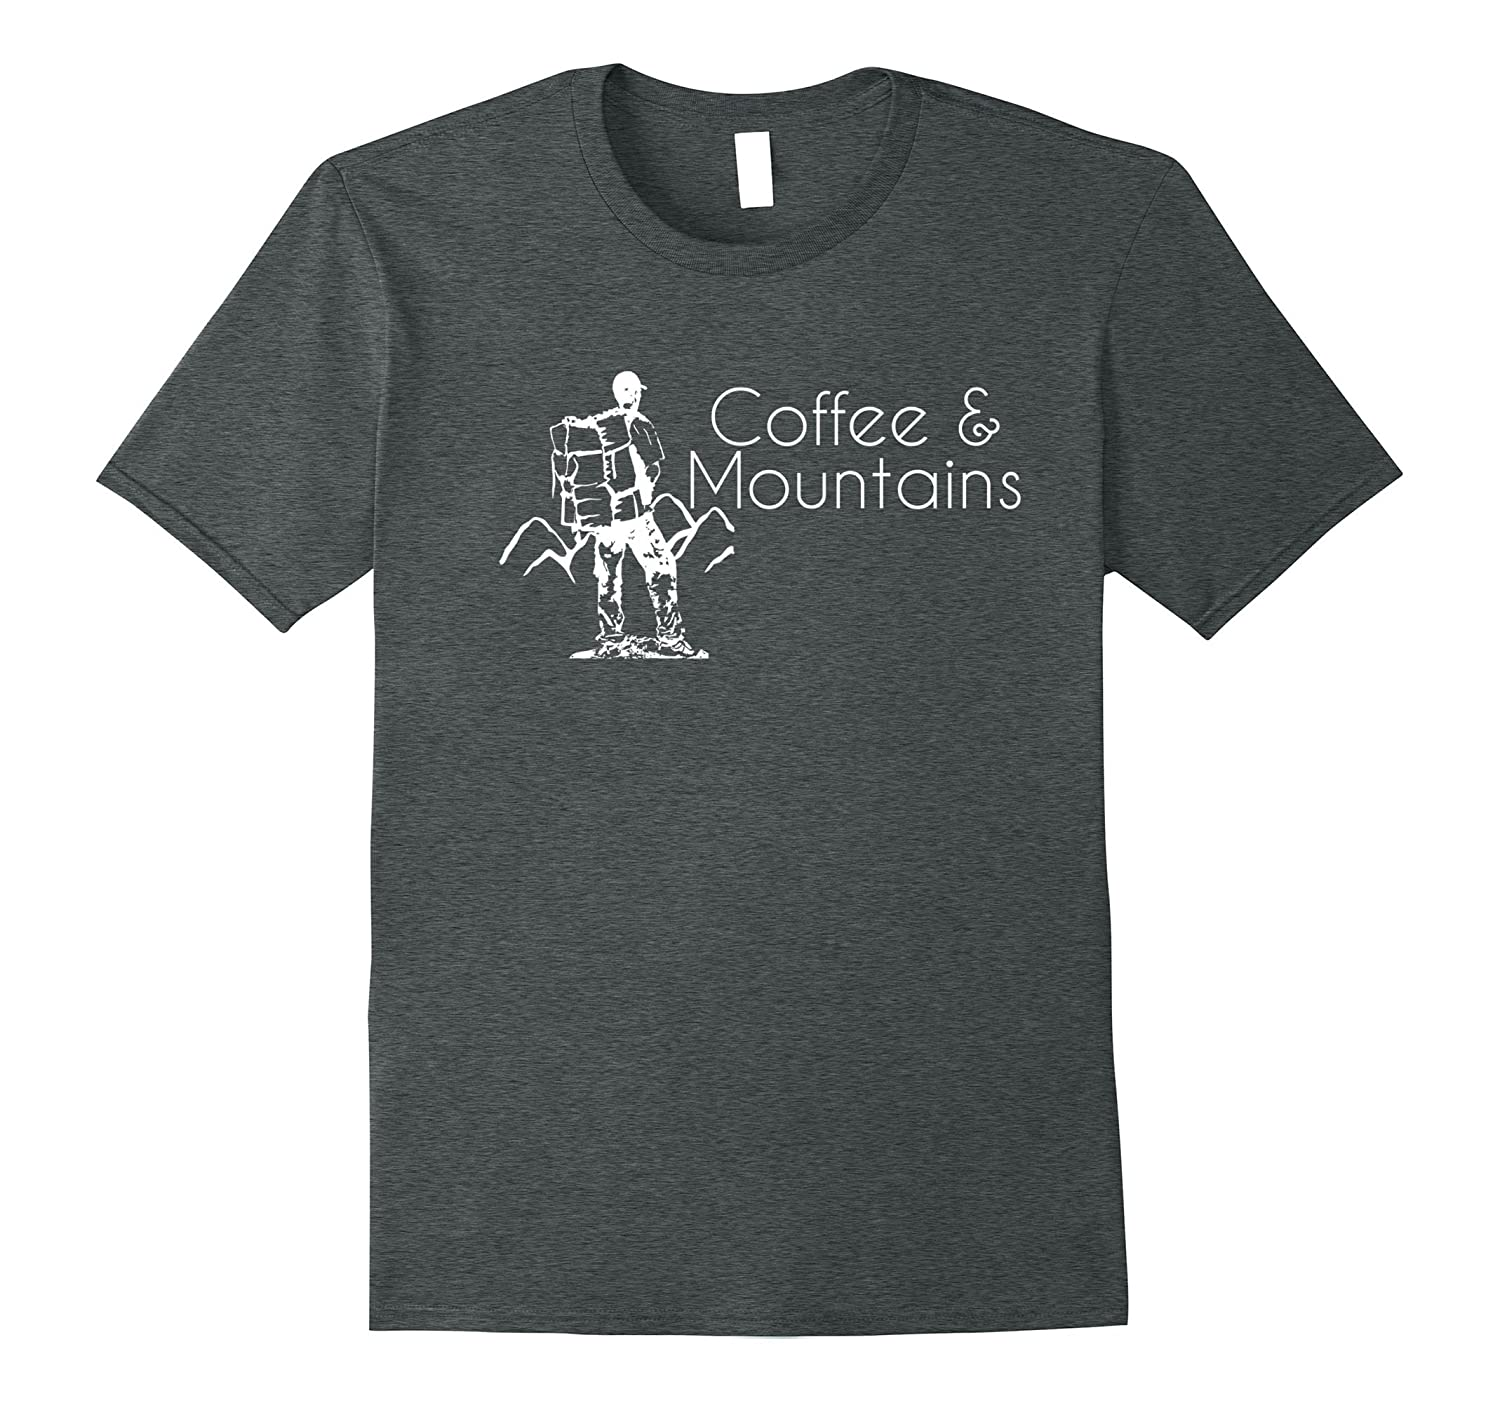 Coffee & Mountains T-Shirt Hiking Funny Tee-Teehay